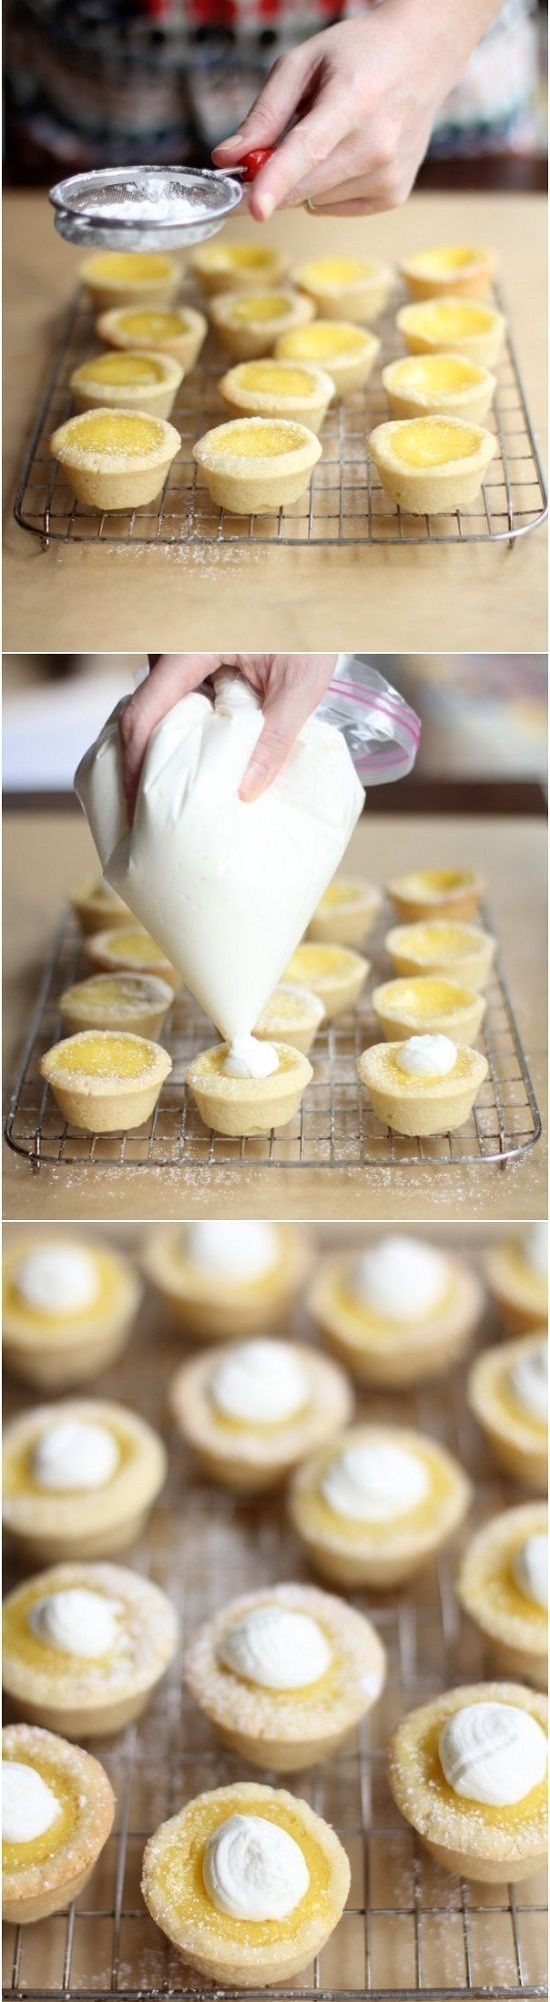 Sugar Cookie Lemon Tarts | No finicky crusts necessary for these tarts. Use a simple cookie dough for the crust and fill it with a perfectly sweet and sour lemon filling.